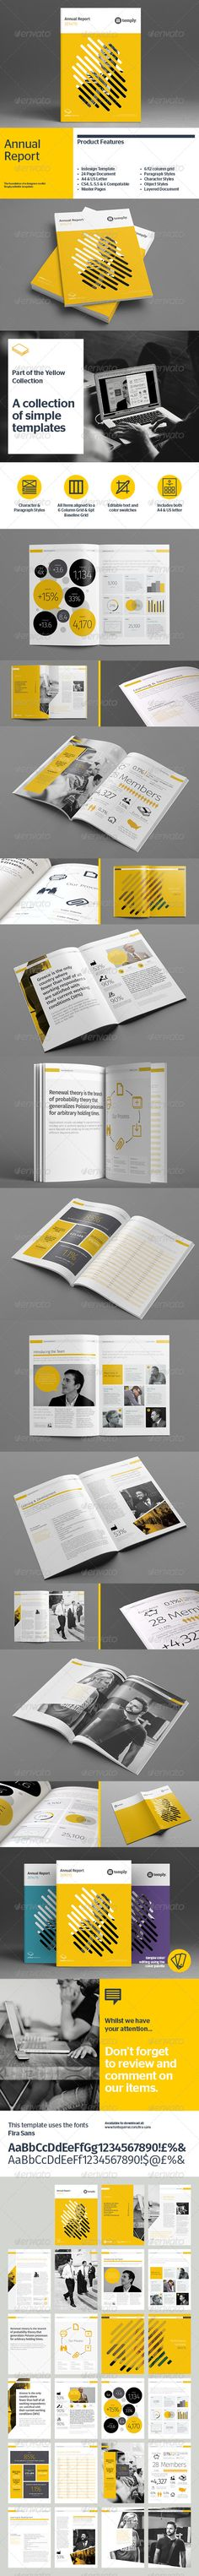 Annual Report Template Corporate Brochure Template by Temp-ly. Design Brochure, Brochure Layout, Brochure Template, Design Resume, Stationery Design, Corporate Brochure, Web Design, Layout Design, Graphic Design